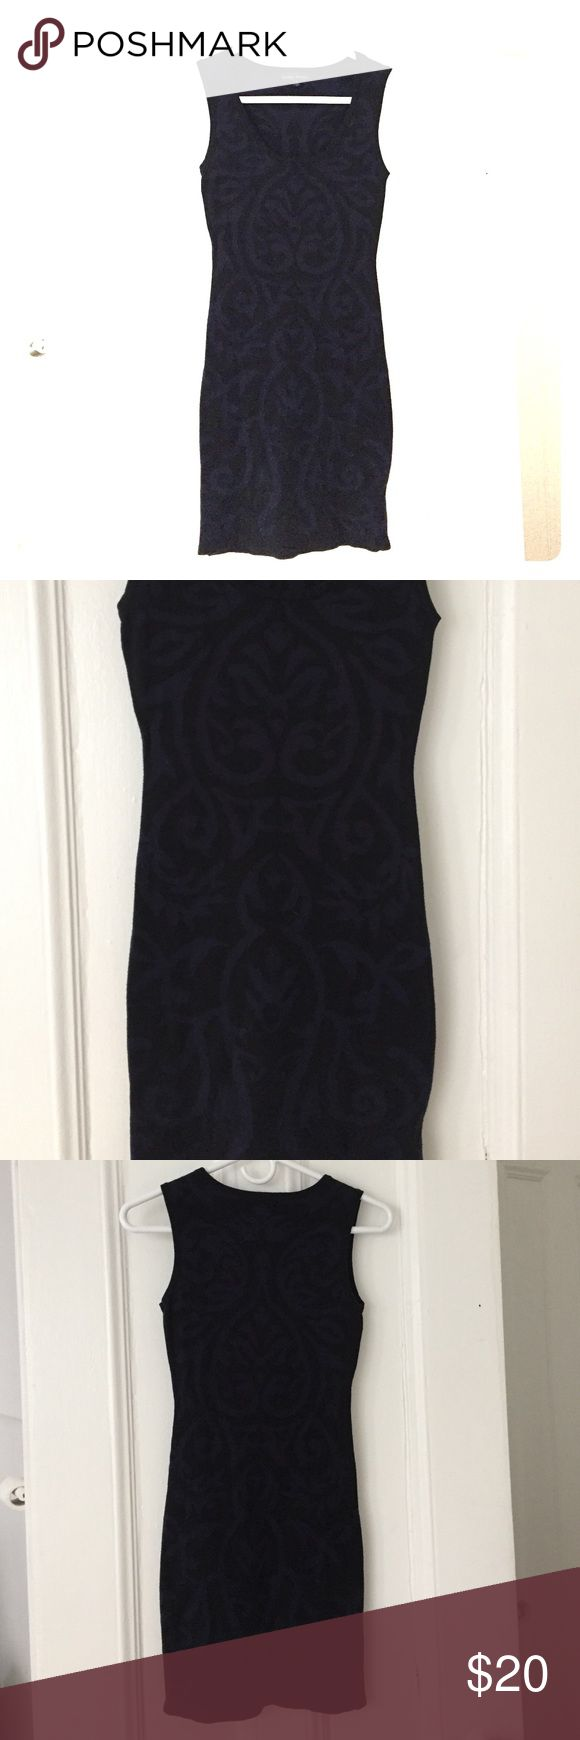 Mini Dress! Classy yet sexy black and navy mini dress. Only wore once! Not BCBG; listed under BCBG for exposure. BCBG Dresses Mini